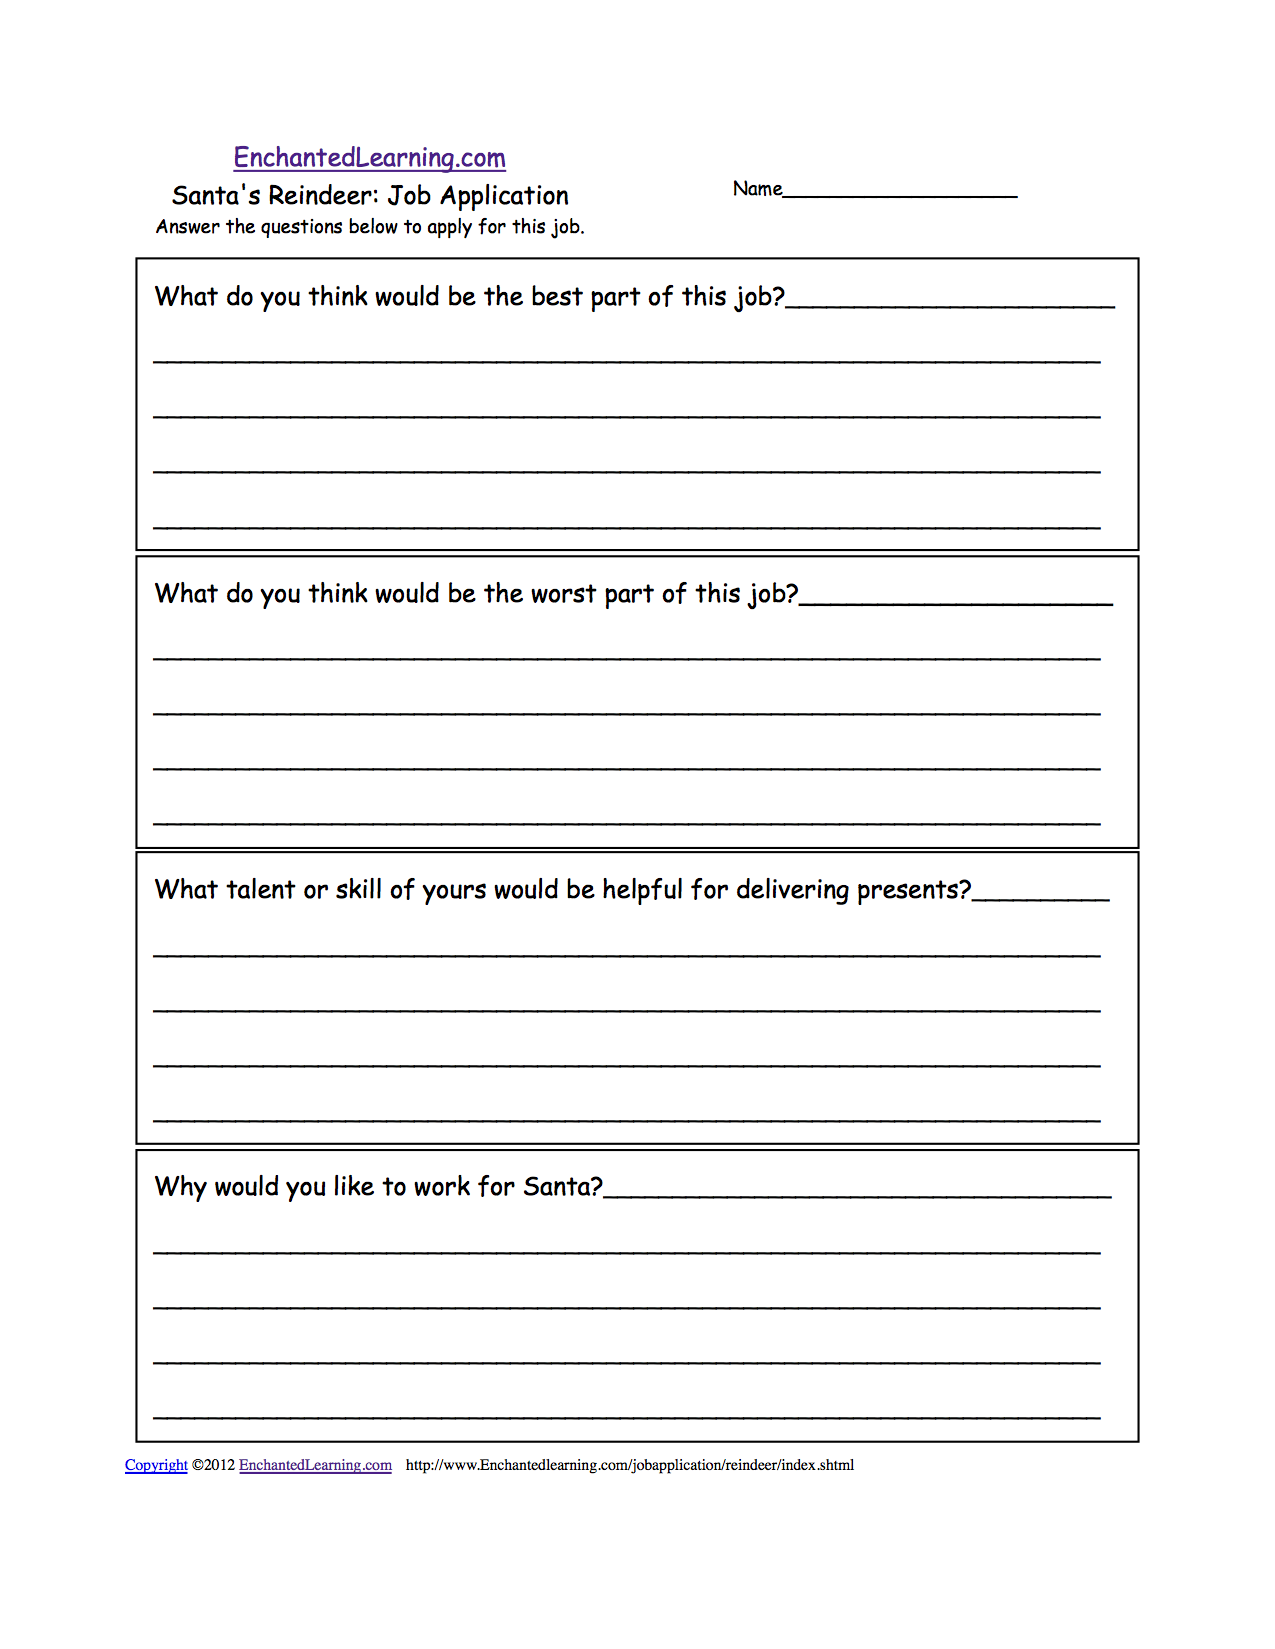 Mock Job Application Writing Prompts to Print: EnchantedLearning.com